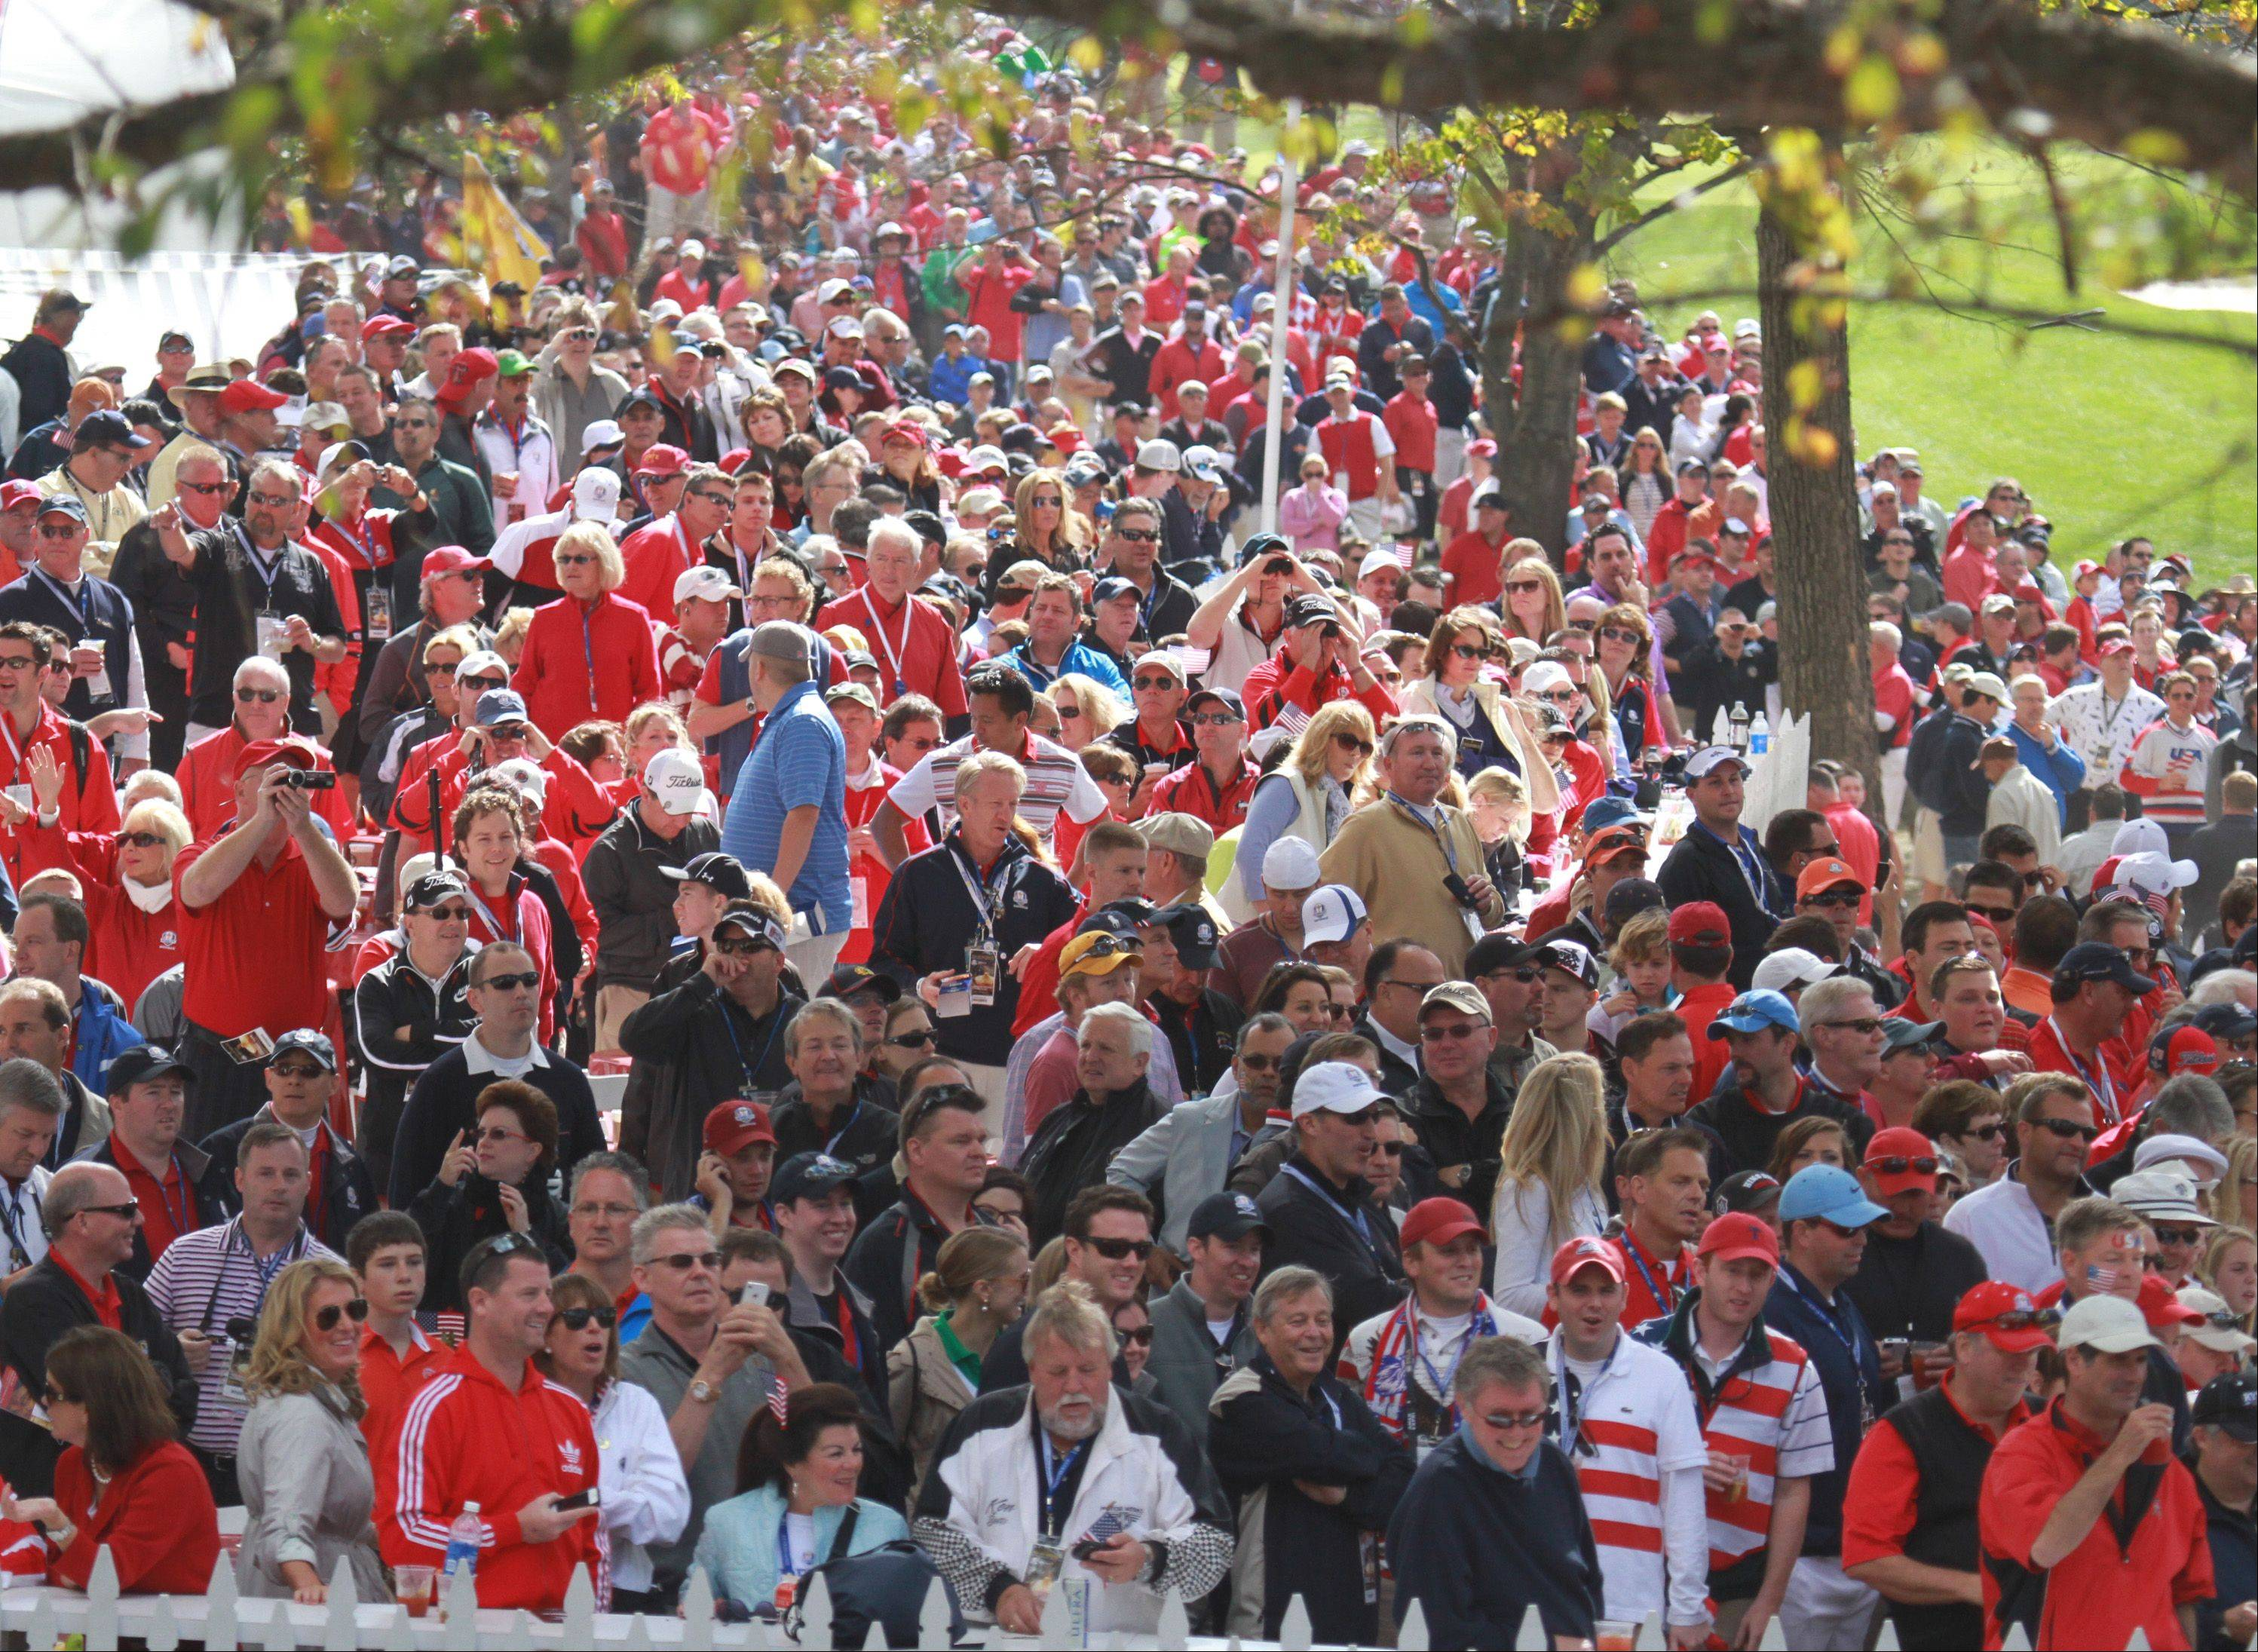 Fans jam the course at Medinah Country Club Sunday to see the conclusion of the 39th Ryder Cup.